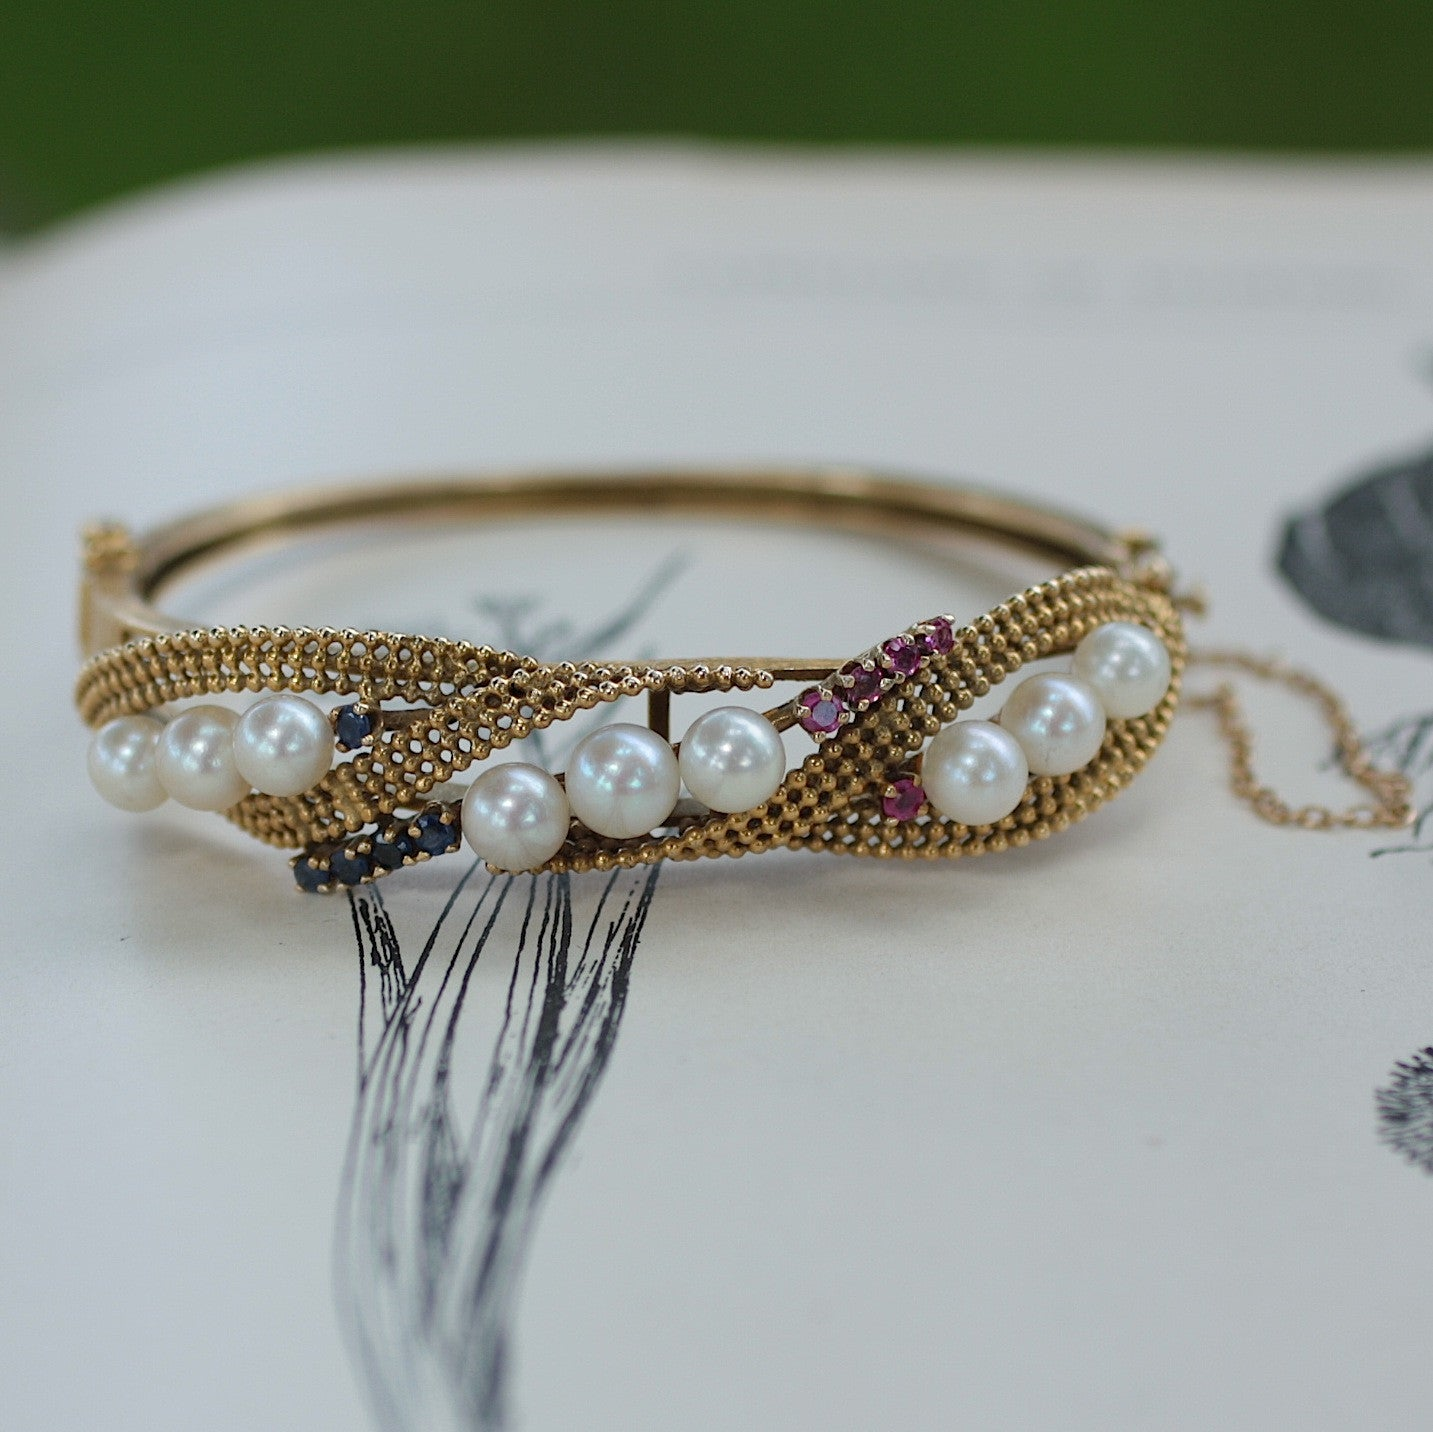 Circa 1950 Pearl Bracelet with Rubies and Sapphires